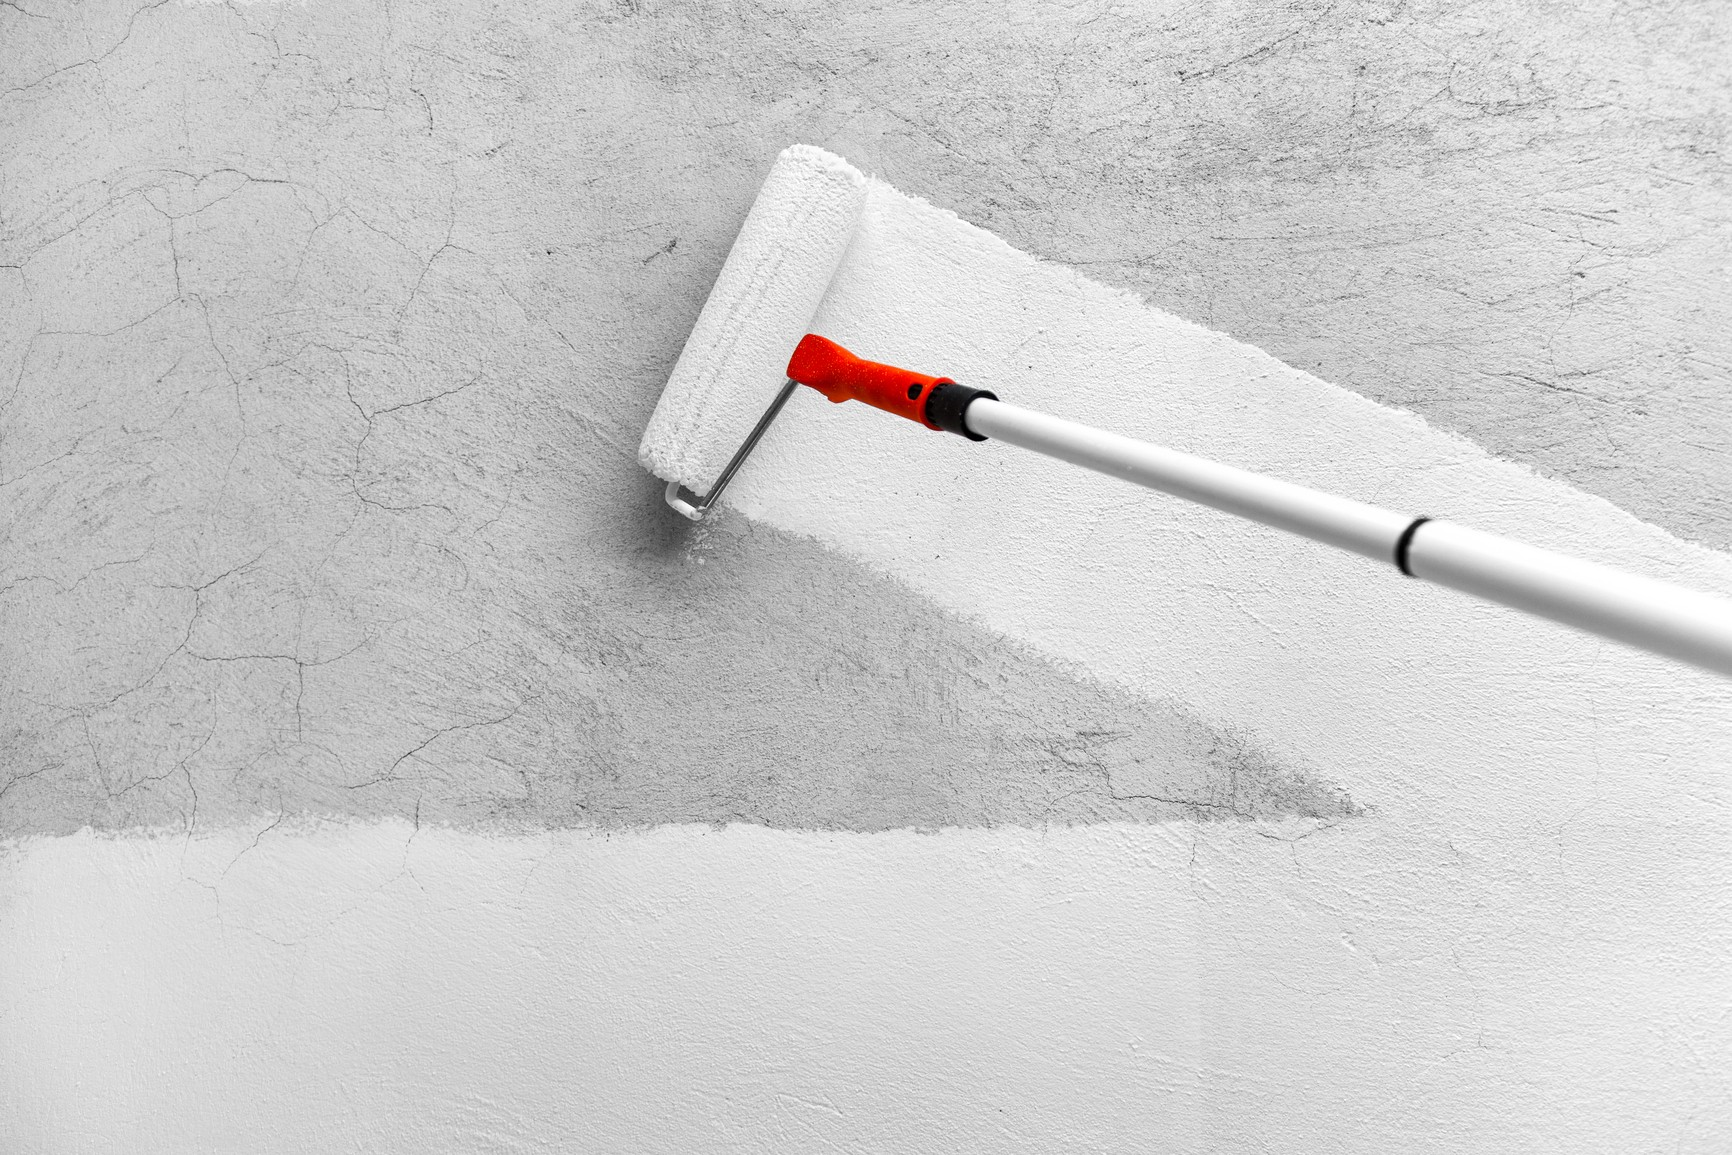 Primer-Painting-Sugar-Land-TX-Professional-Painting-Contractors-We offer Residential & Commercial Painting, Interior Painting, Exterior Painting, Primer Painting, Industrial Painting, Professional Painters, Institutional Painters, and more.